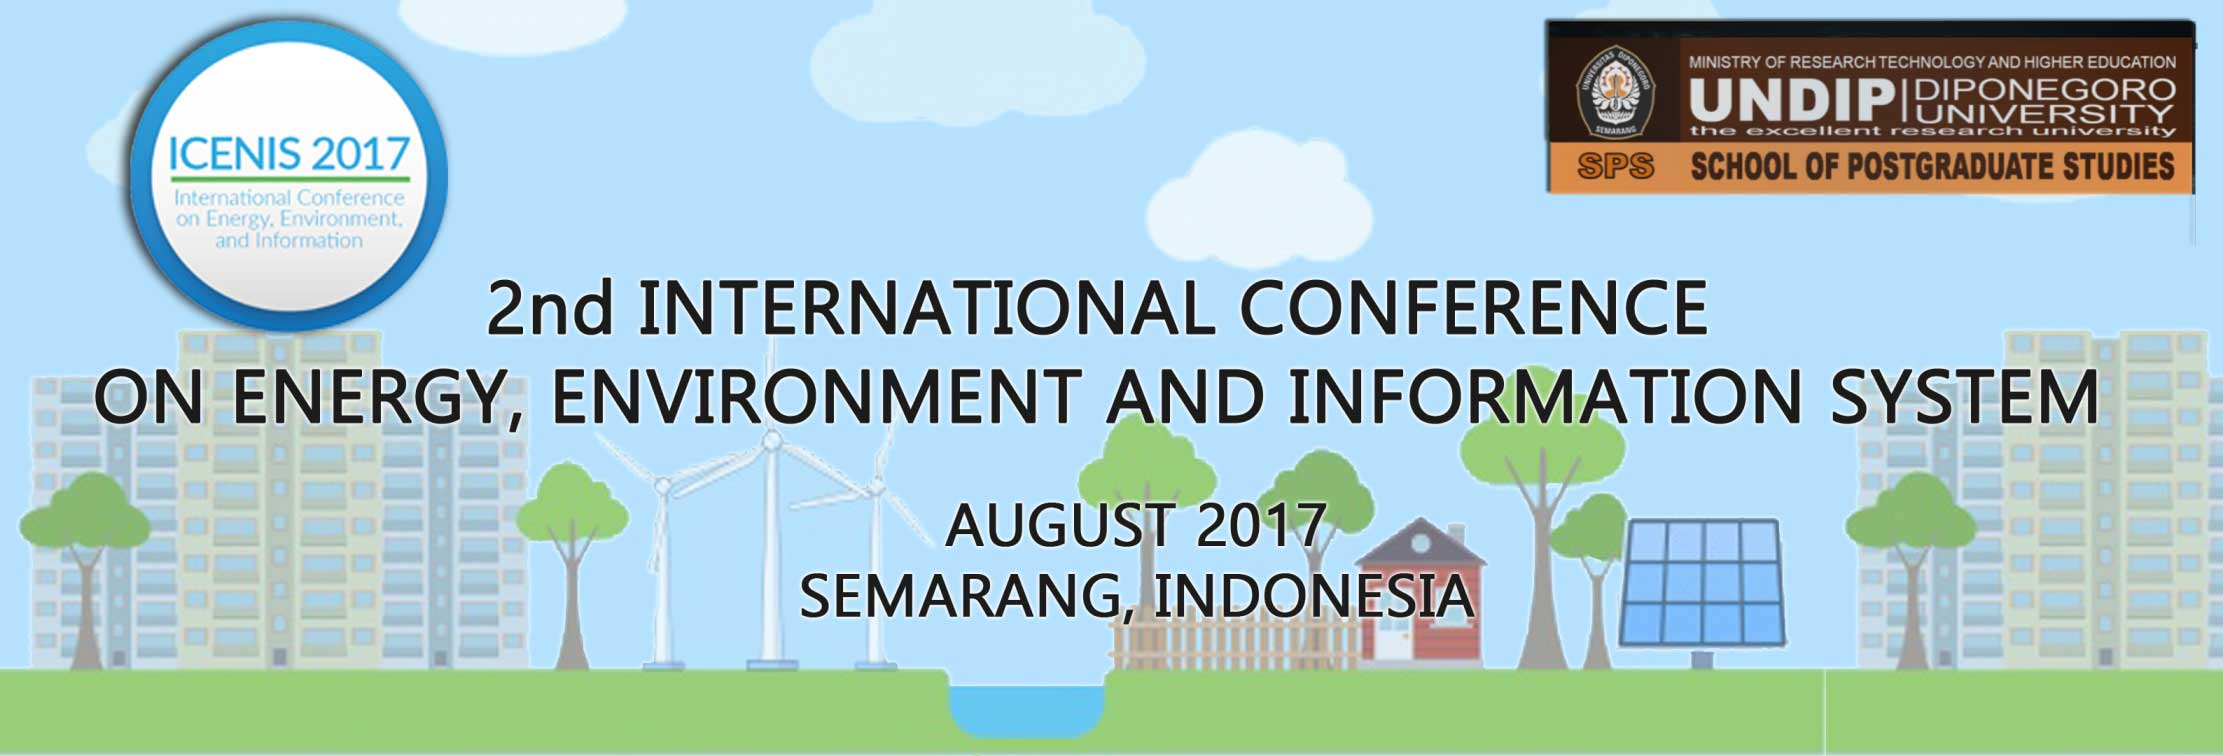 International Conference on Energy, Environment and Information System (ICENIS) 2017